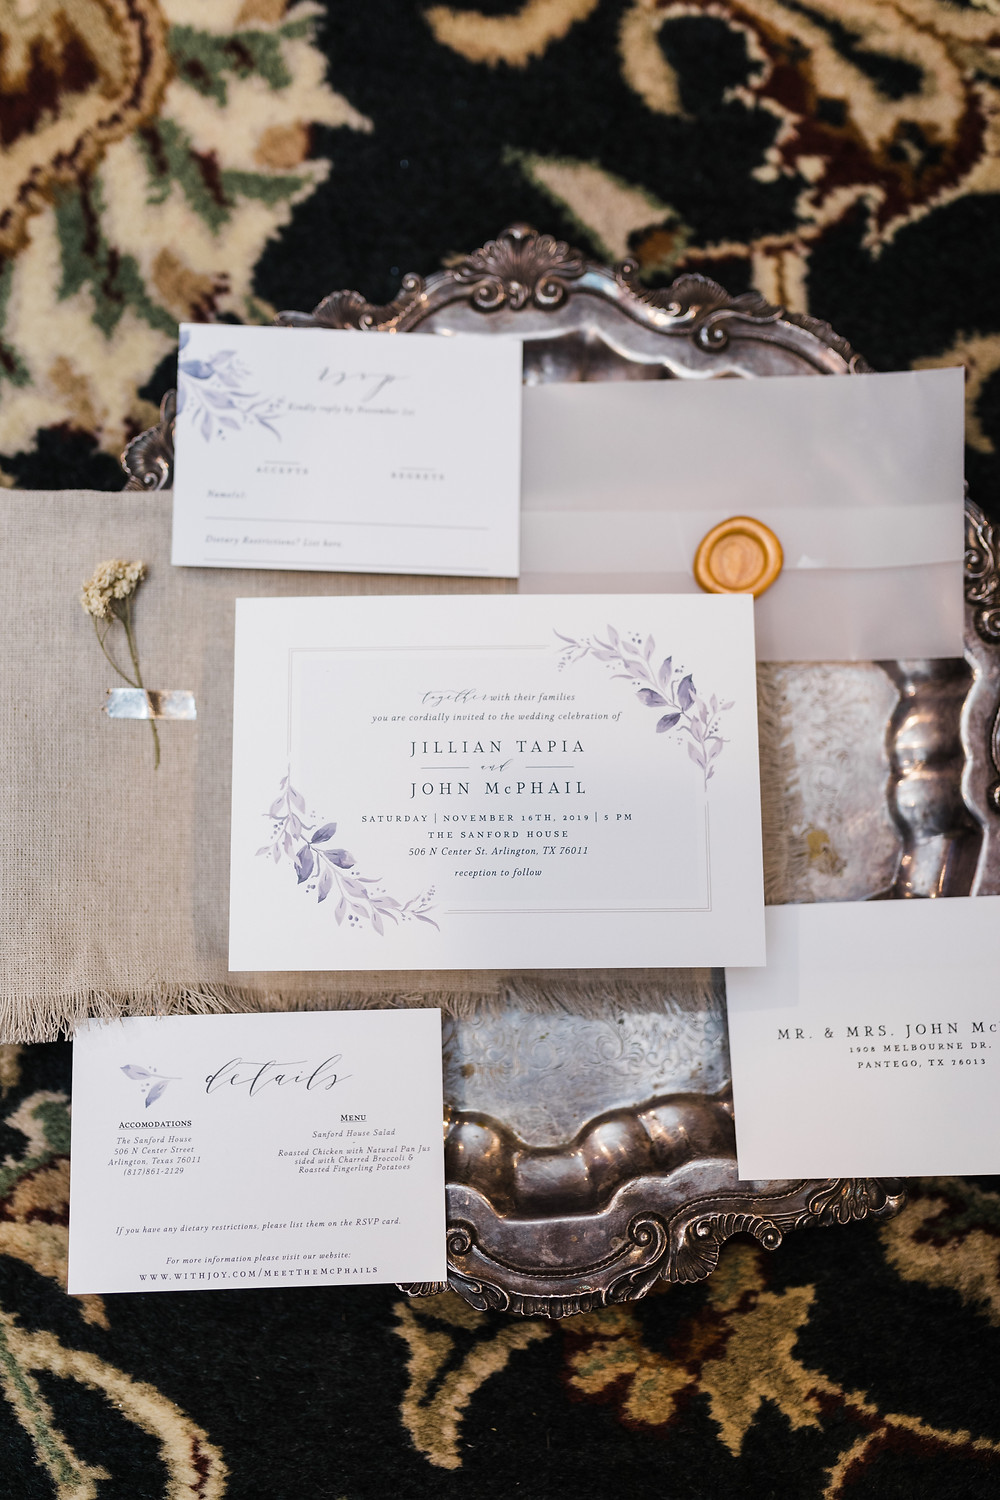 Wedding invitations on a silver platter